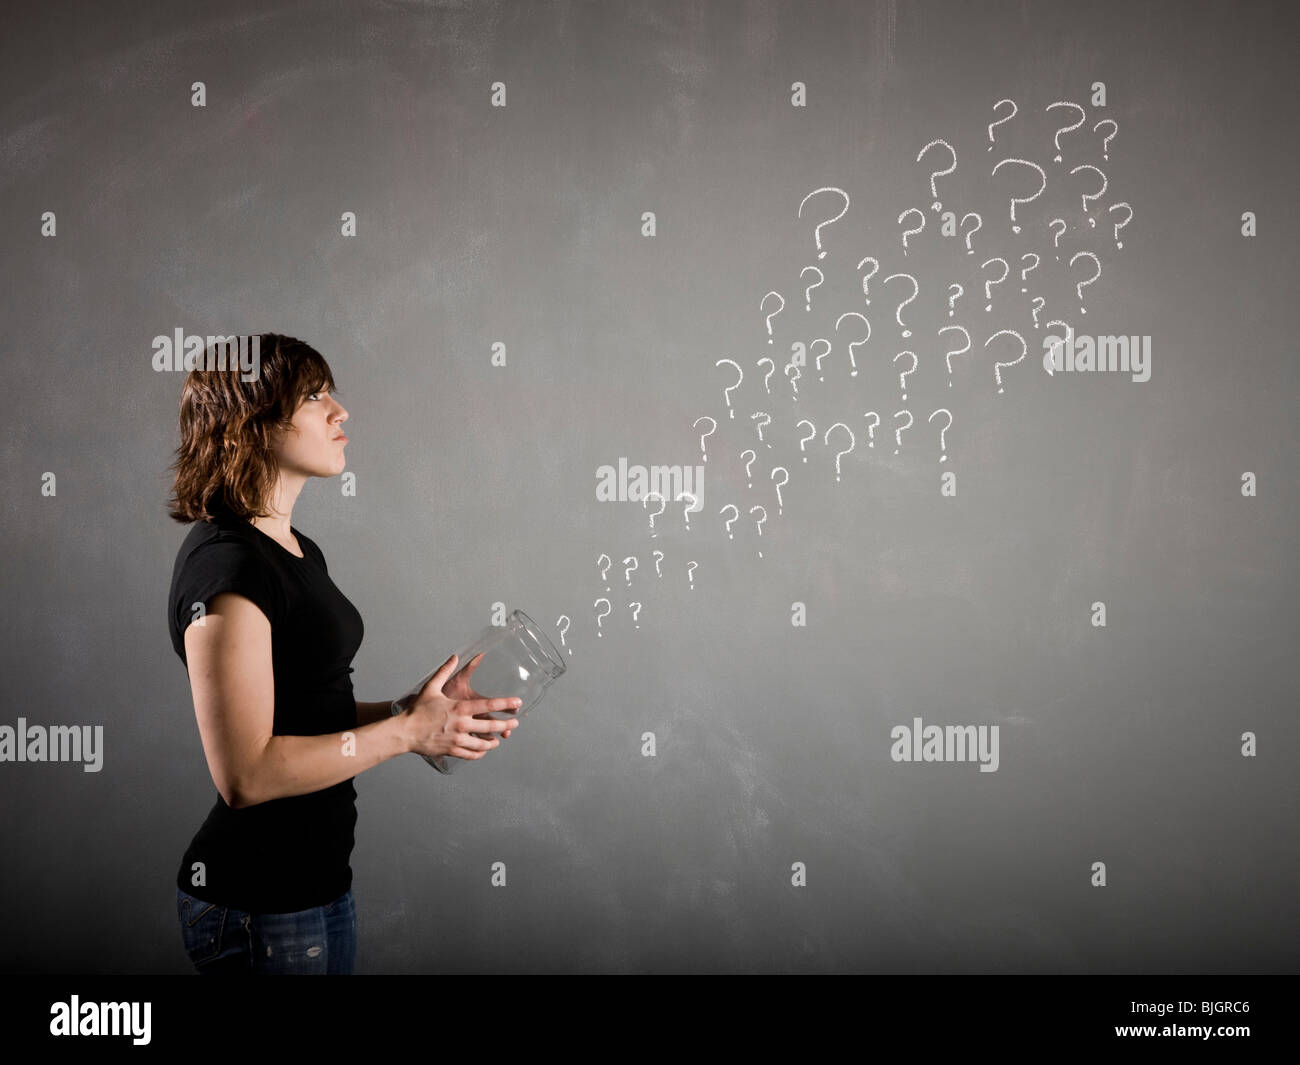 woman with a jar full of question marks - Stock Image